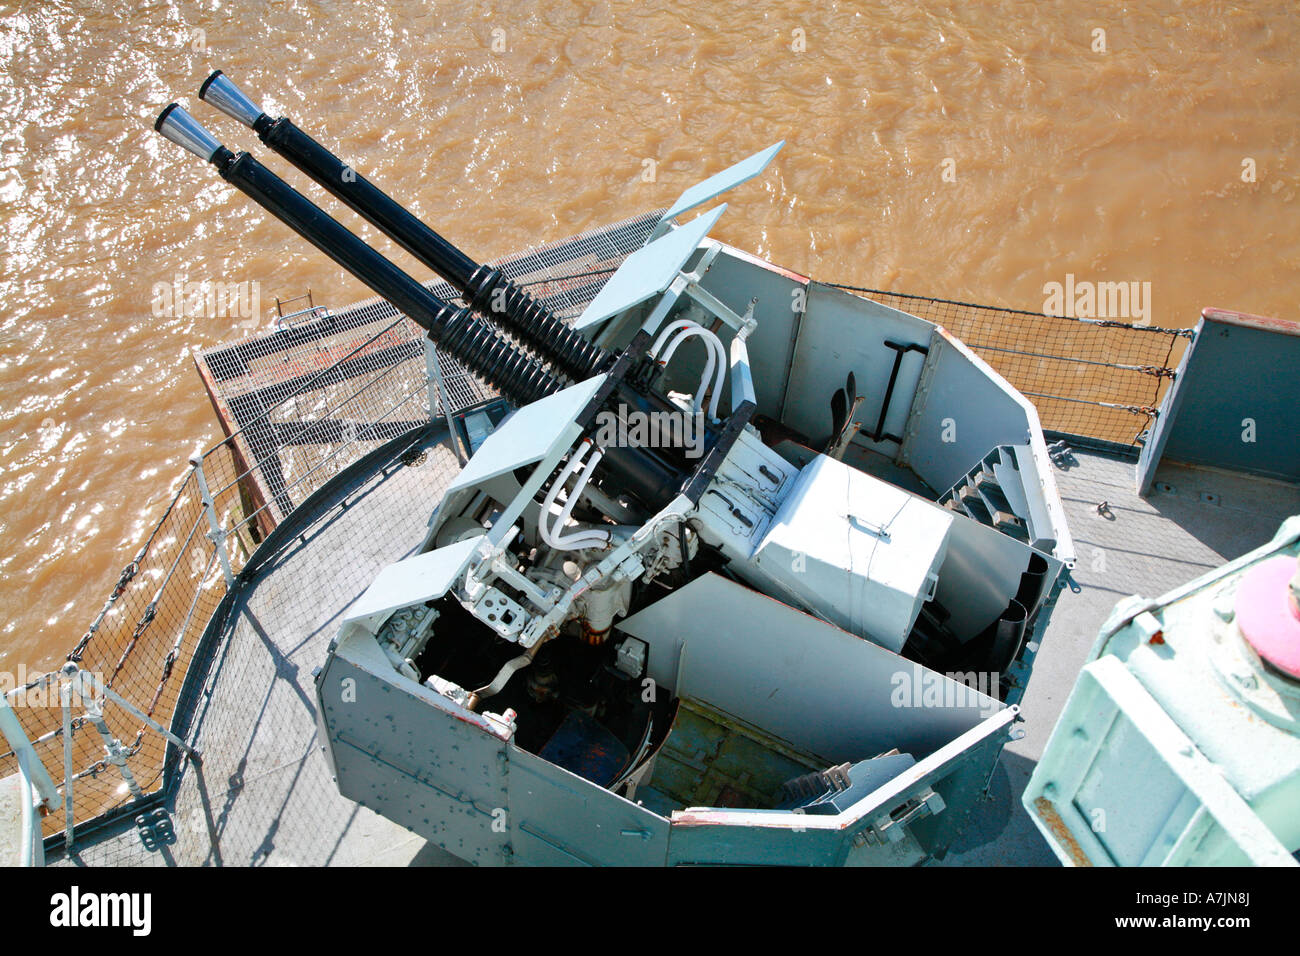 Anti aircraft guns on board the HMS Belfast on the Thames in London - Stock Image